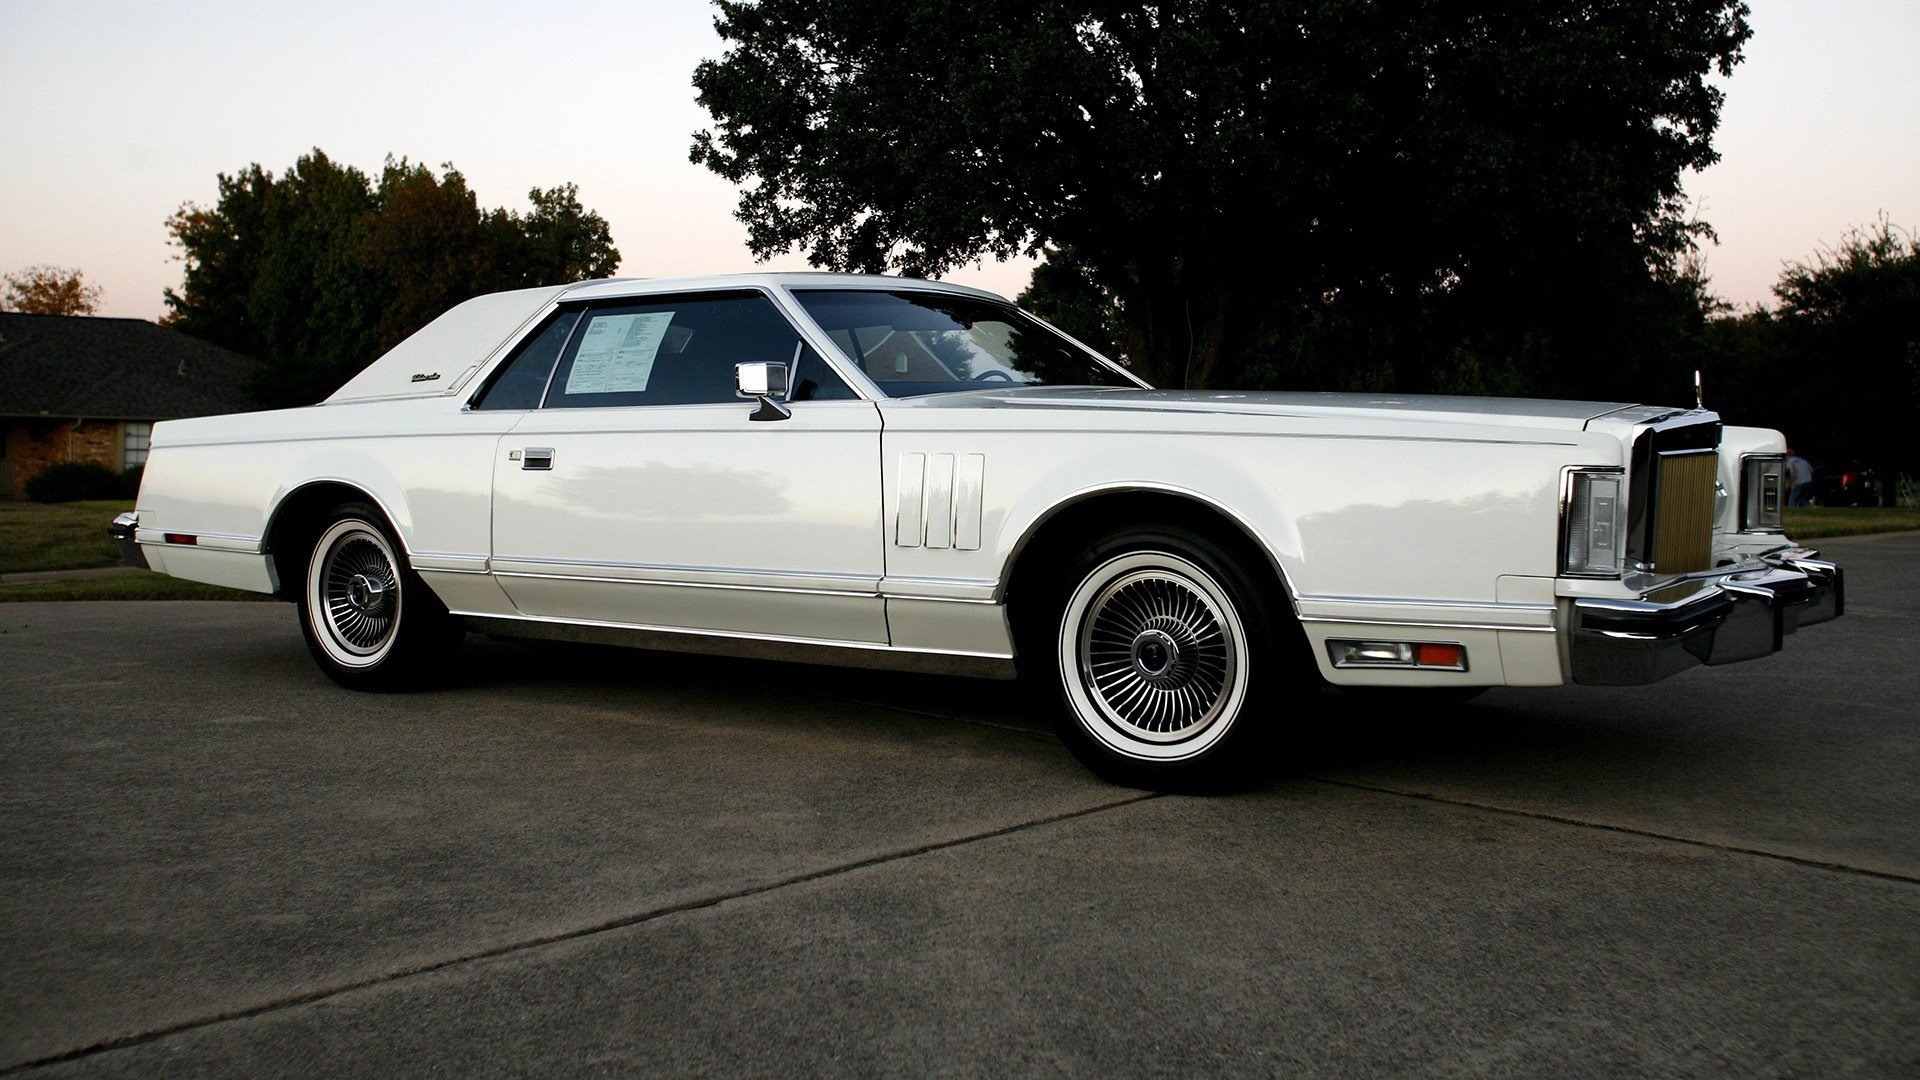 Latest White Lincoln Continental Car Wallpaper Hd 14200 Free Download